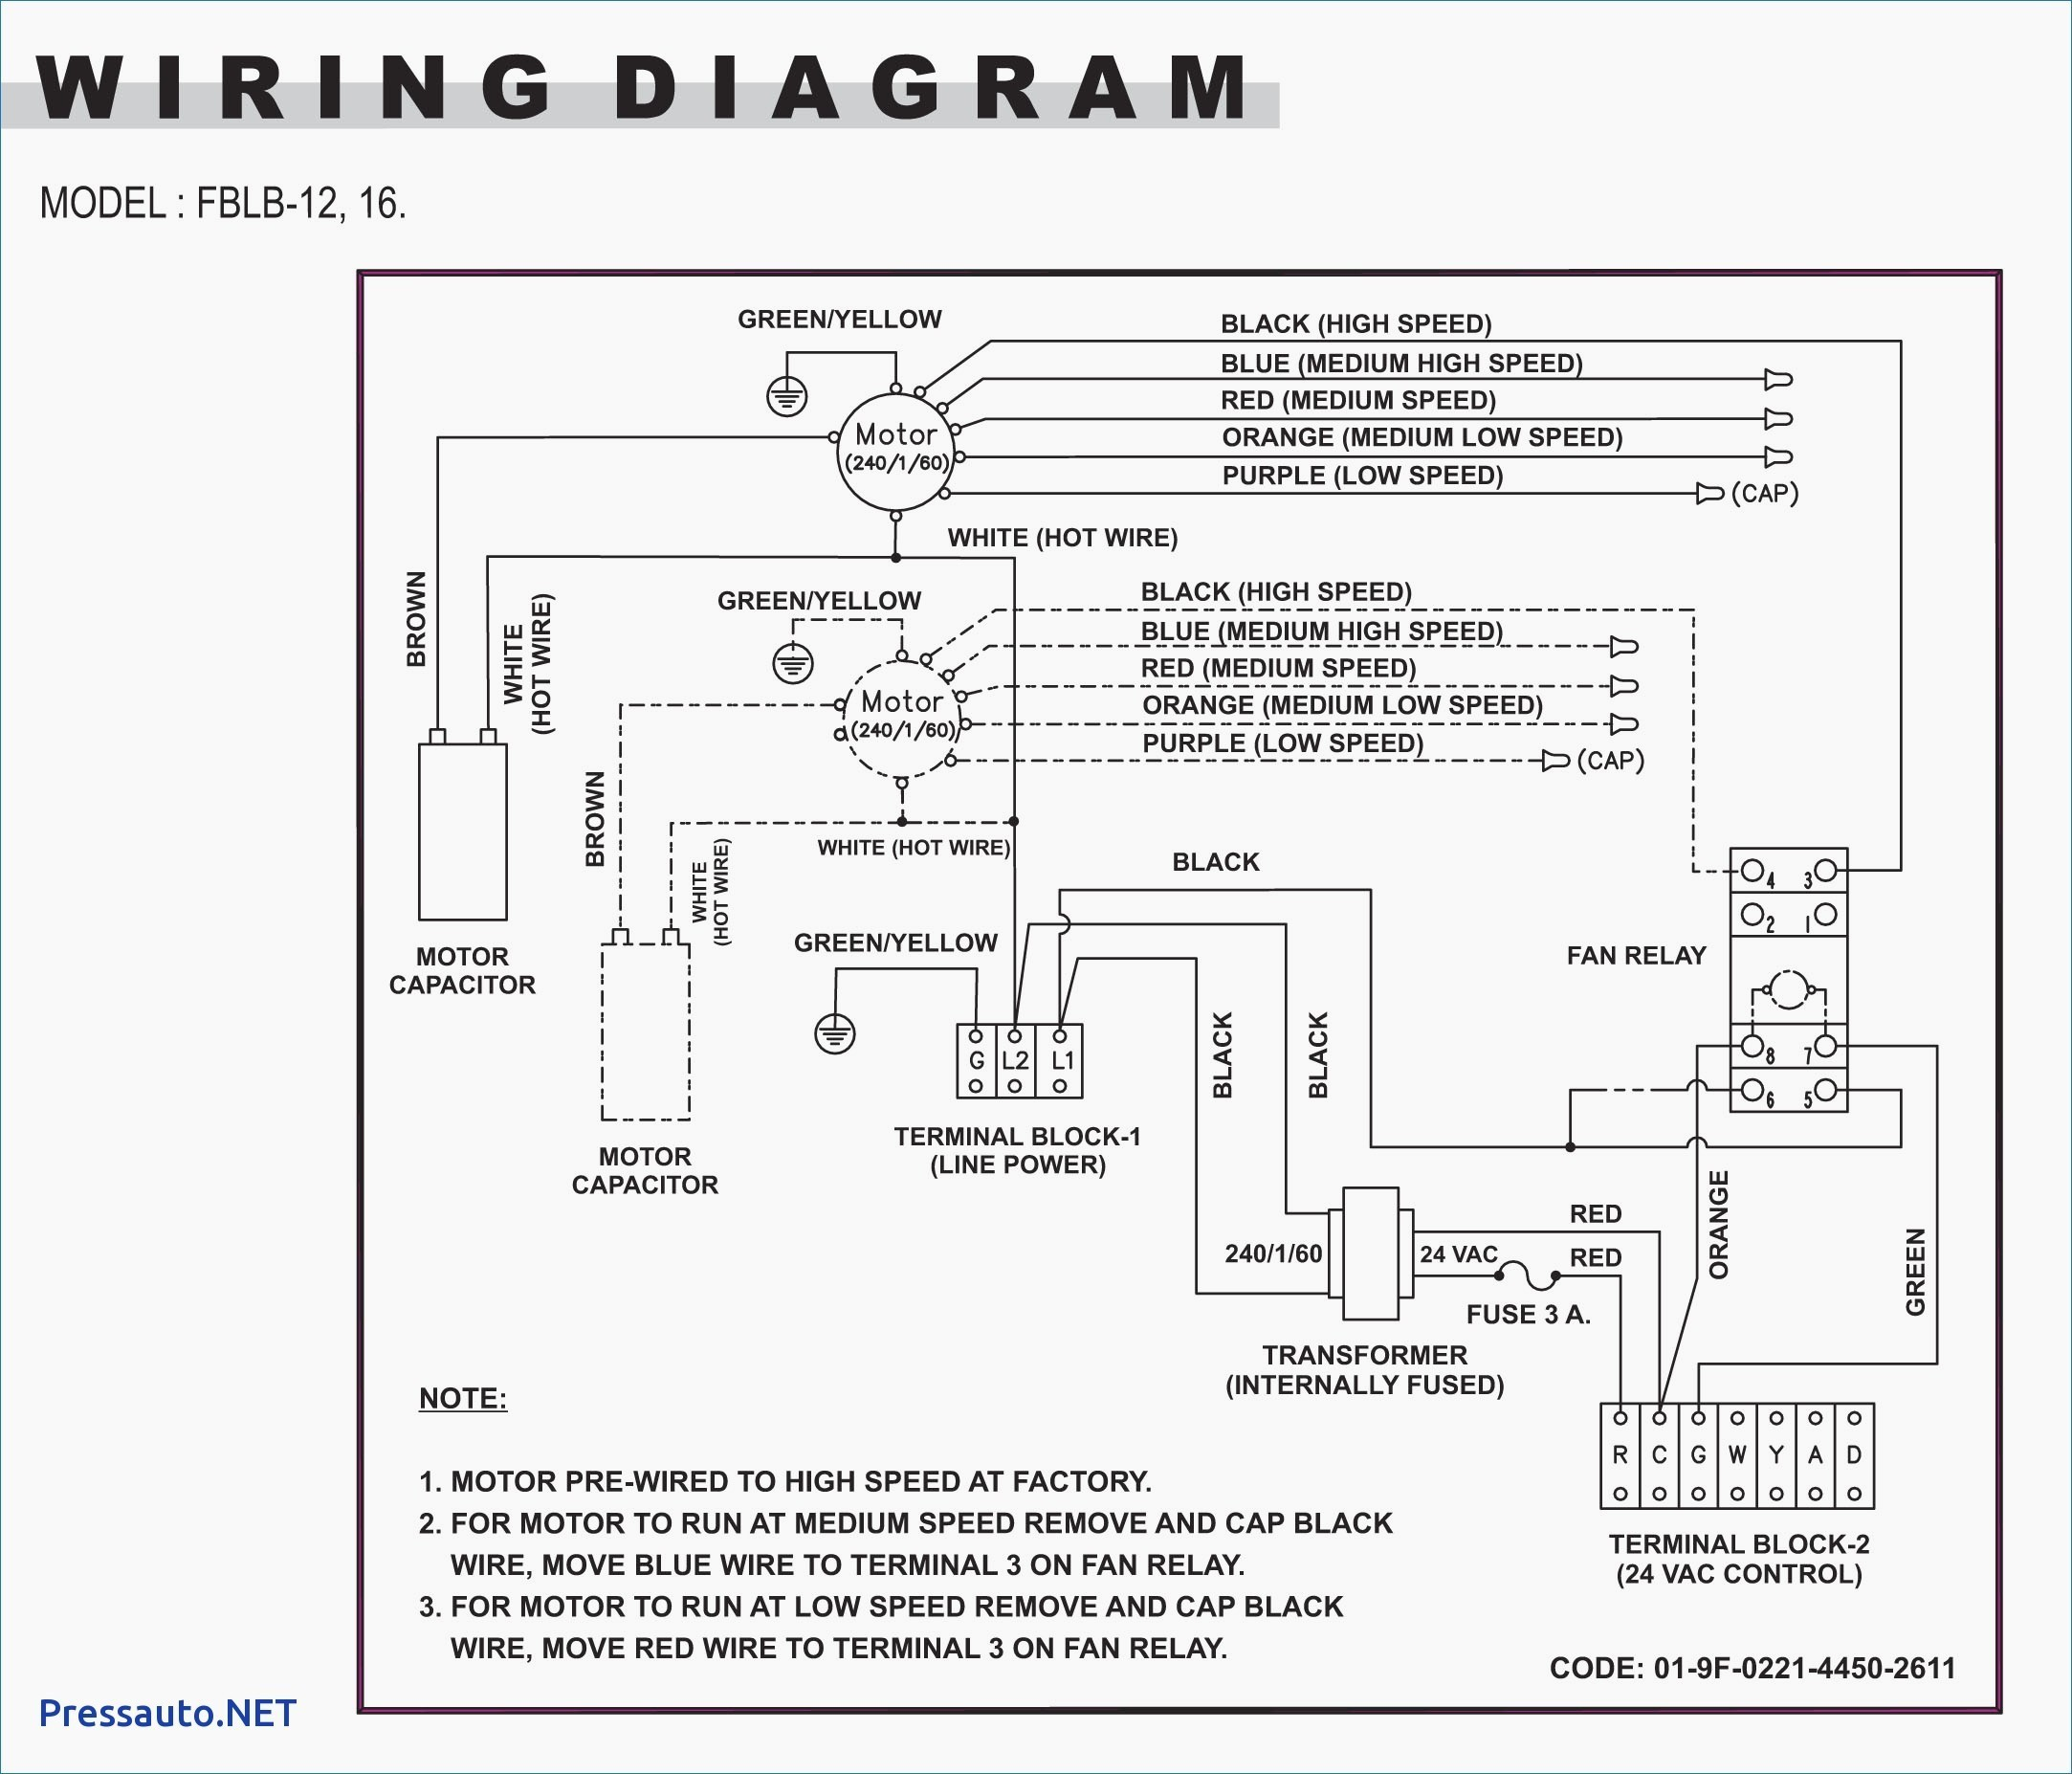 Atwood Excalibur Wiring Diagram Blog About Diagrams Camper Furnace Water Heater Parts Ellis